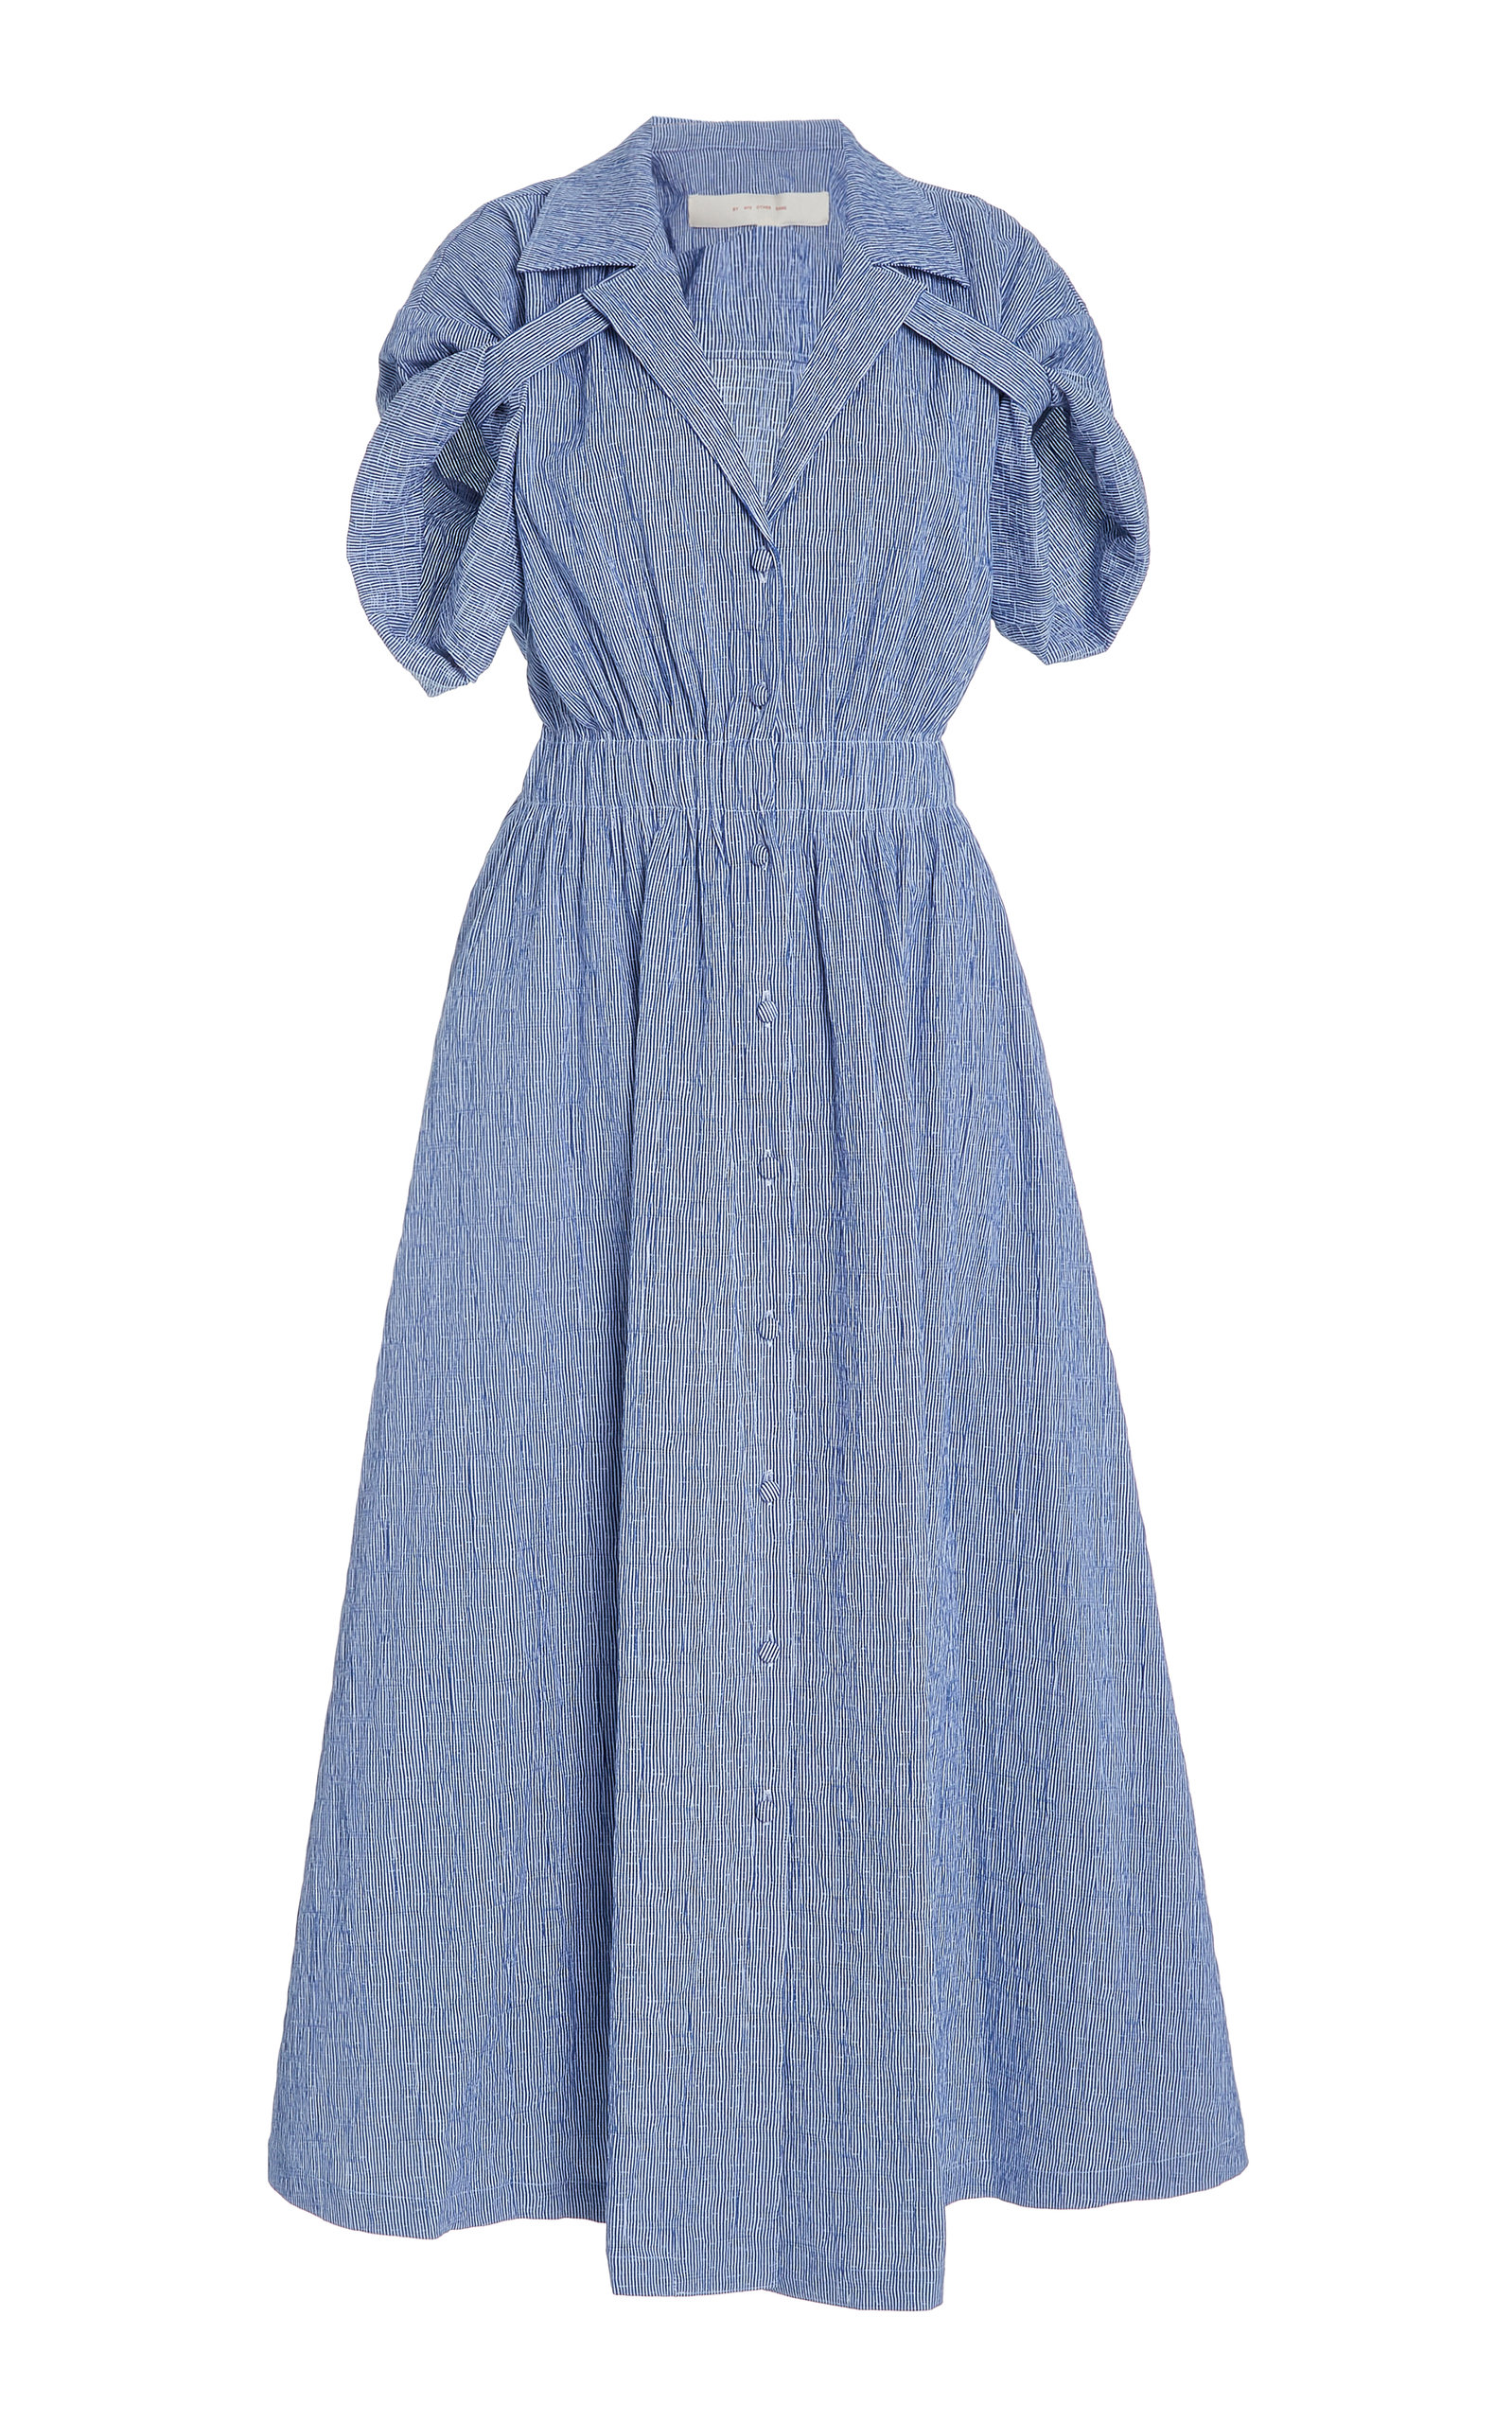 Buy By Any Other Name Shirred Cotton-Blend Gauze Midi Dress online, shop By Any Other Name at the best price